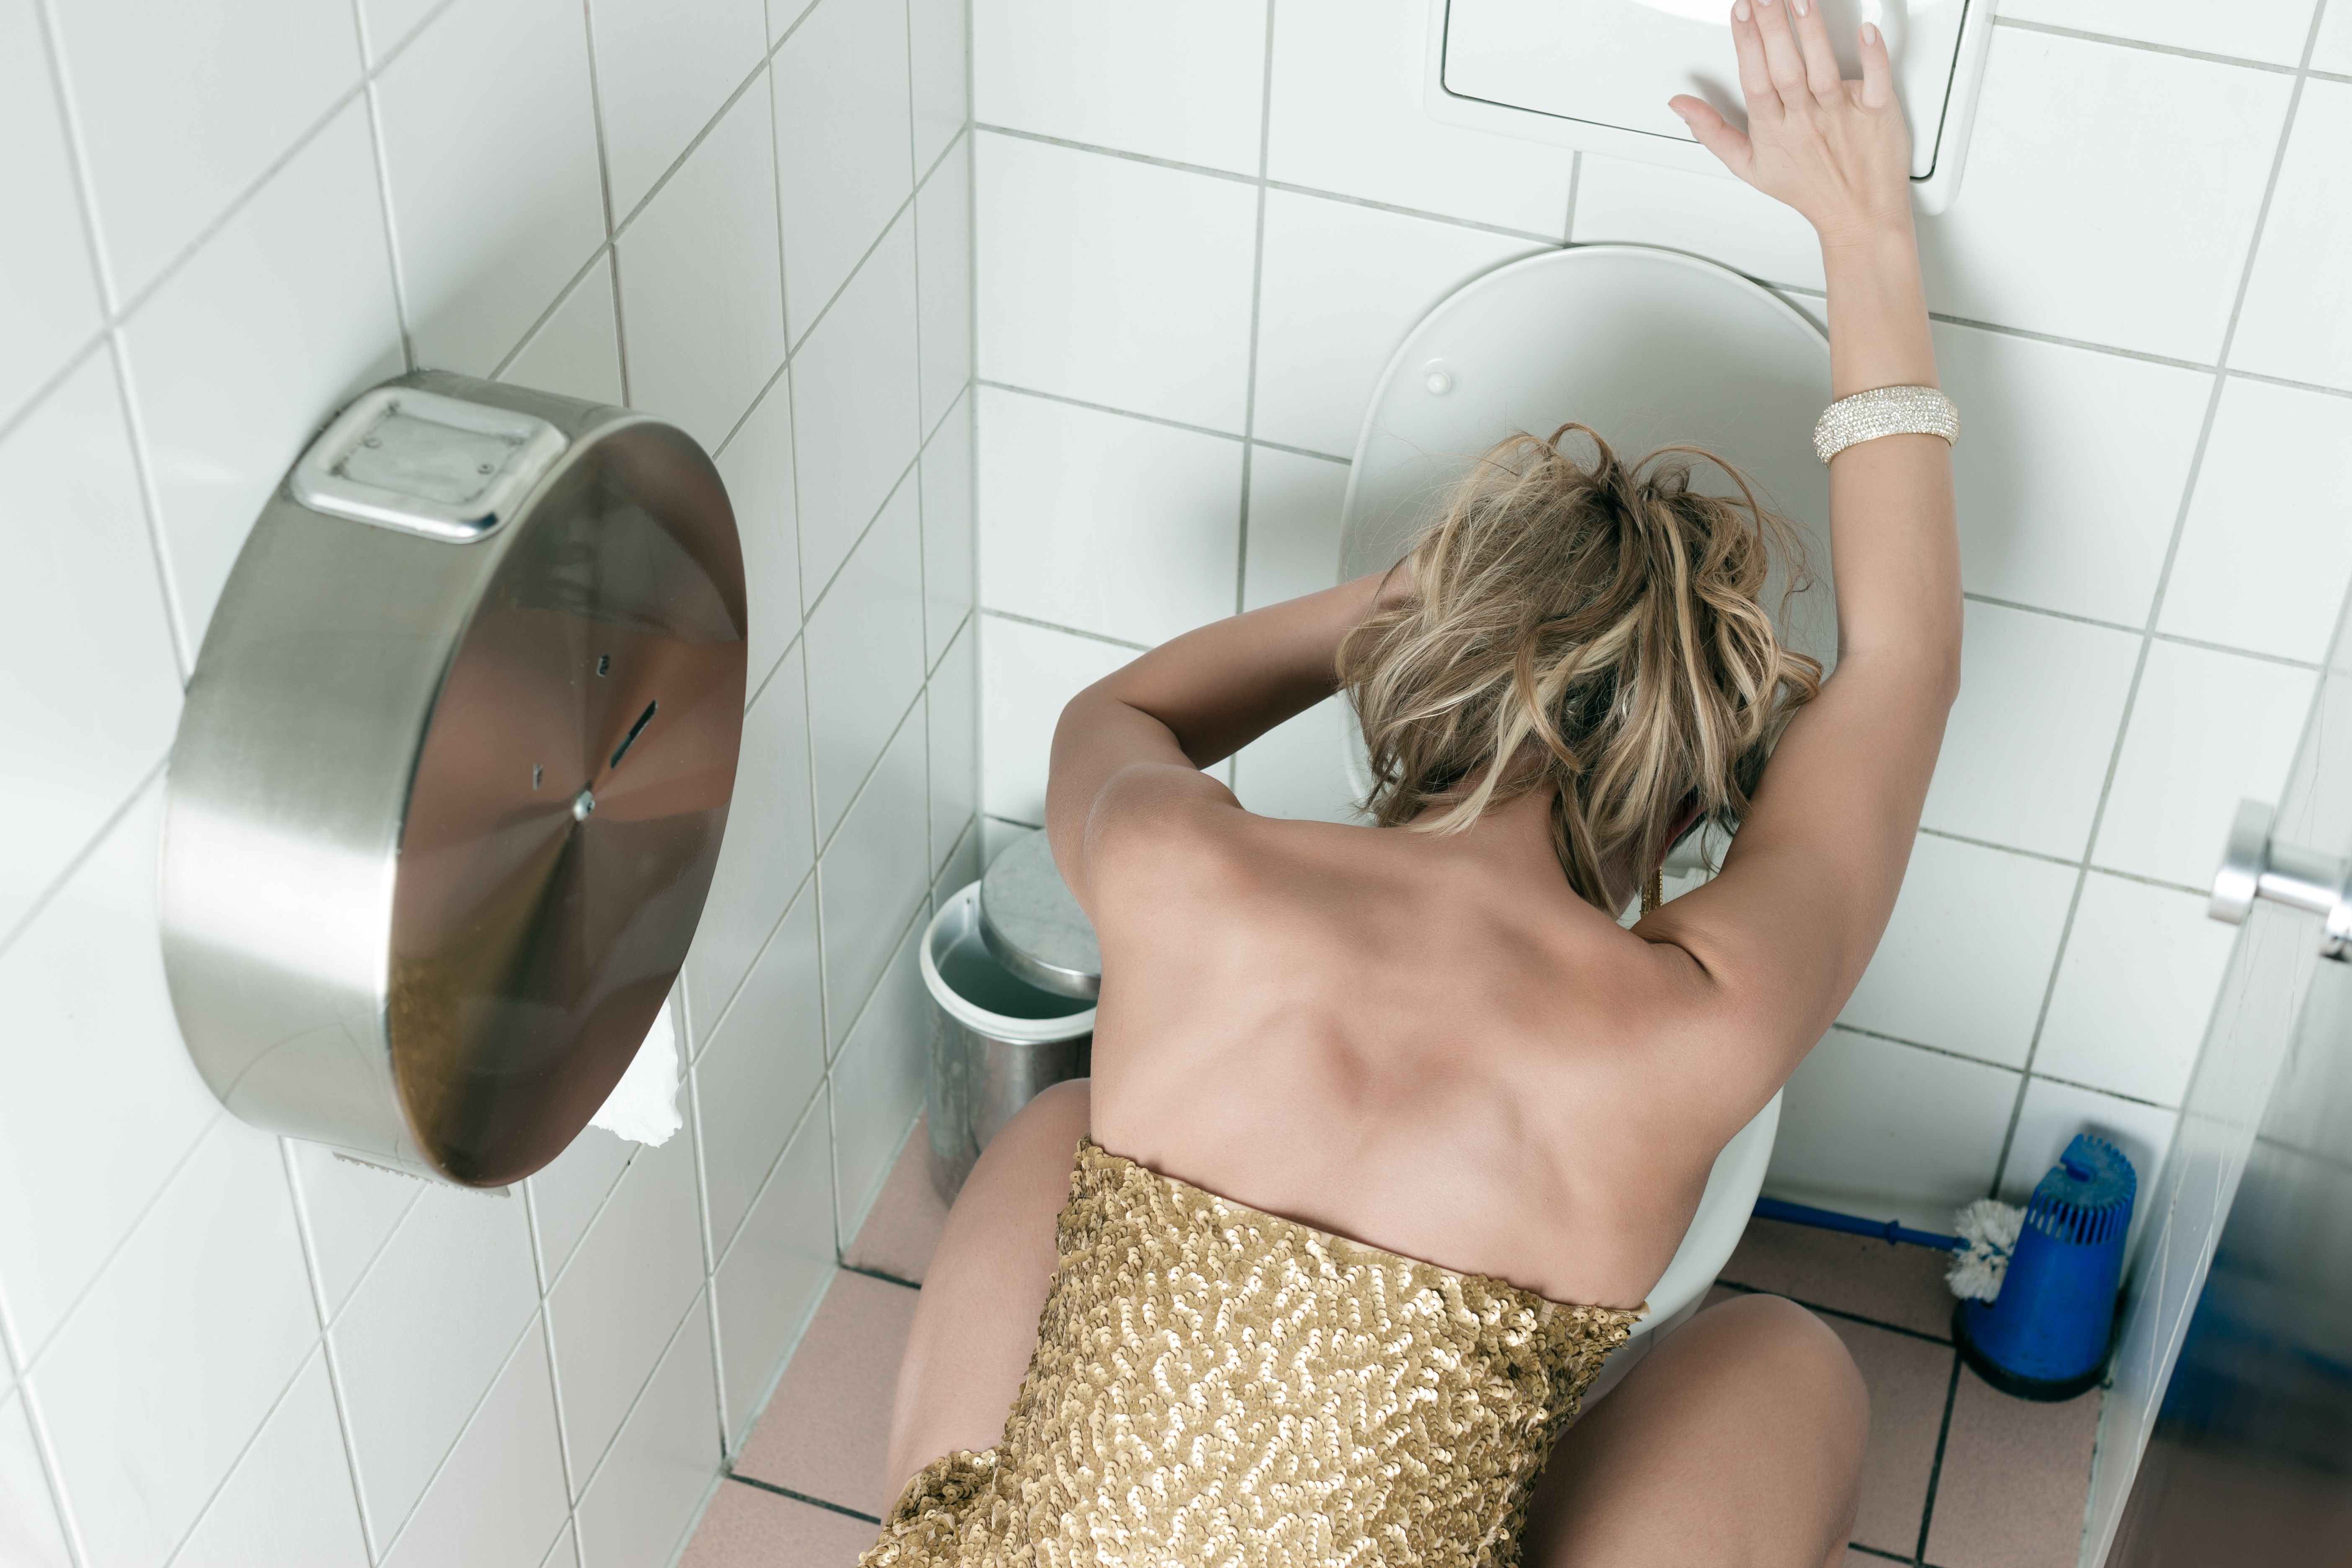 A sick woman throwing up in the bathroom. | Source: Shutterstock